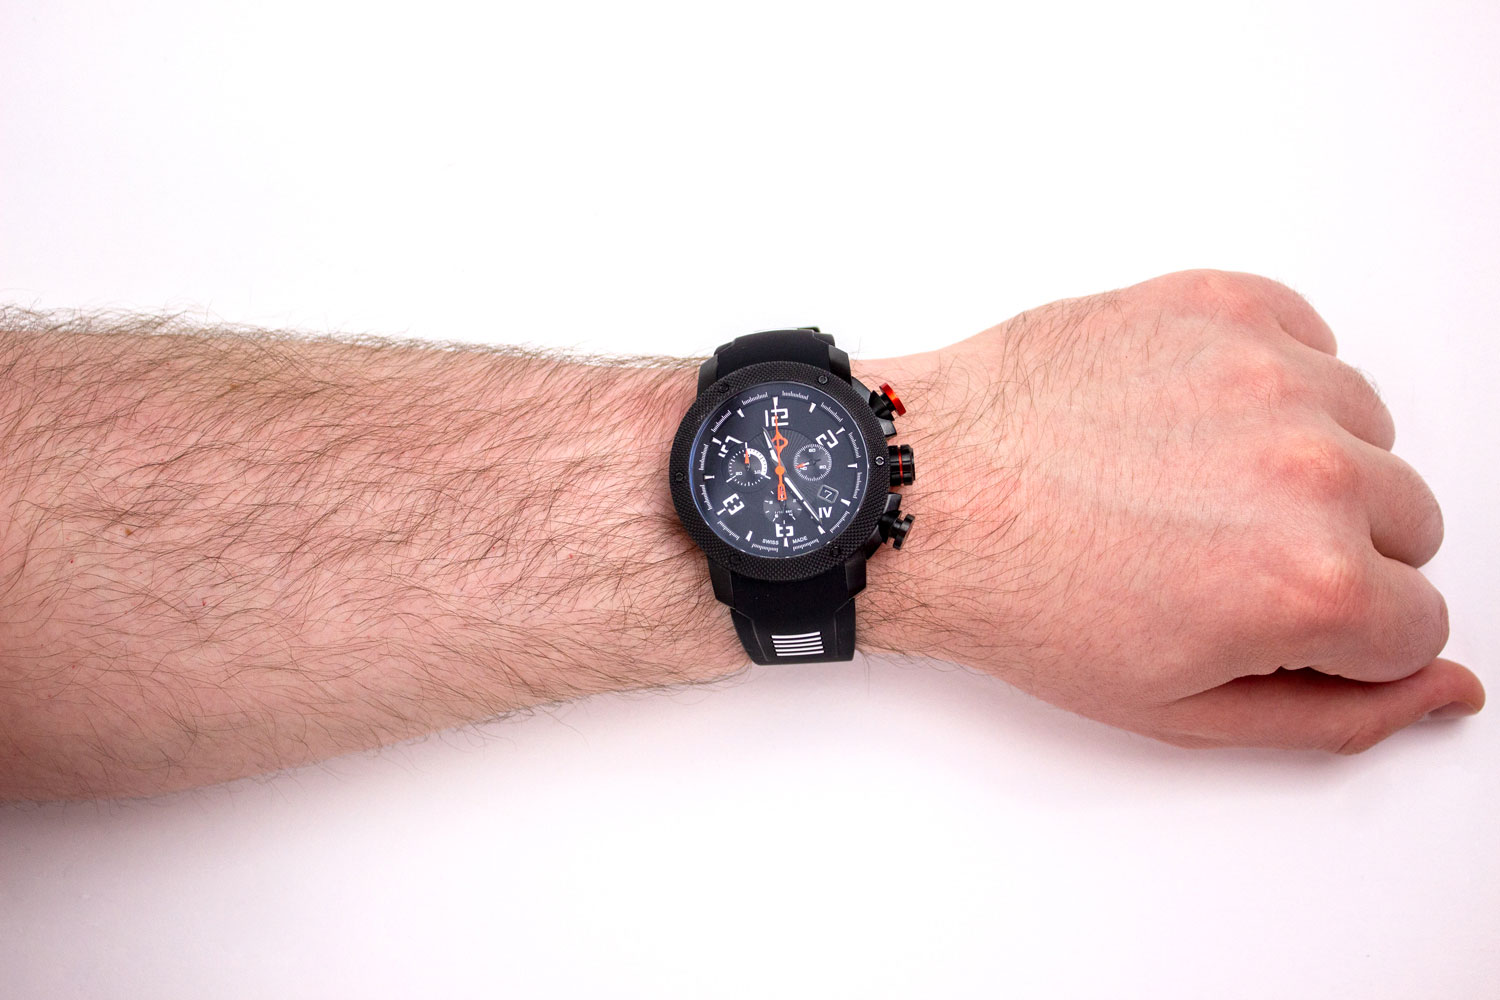 Photo of how the LIV GX1 fits on a 7.5 in (19.05 cm) wrist